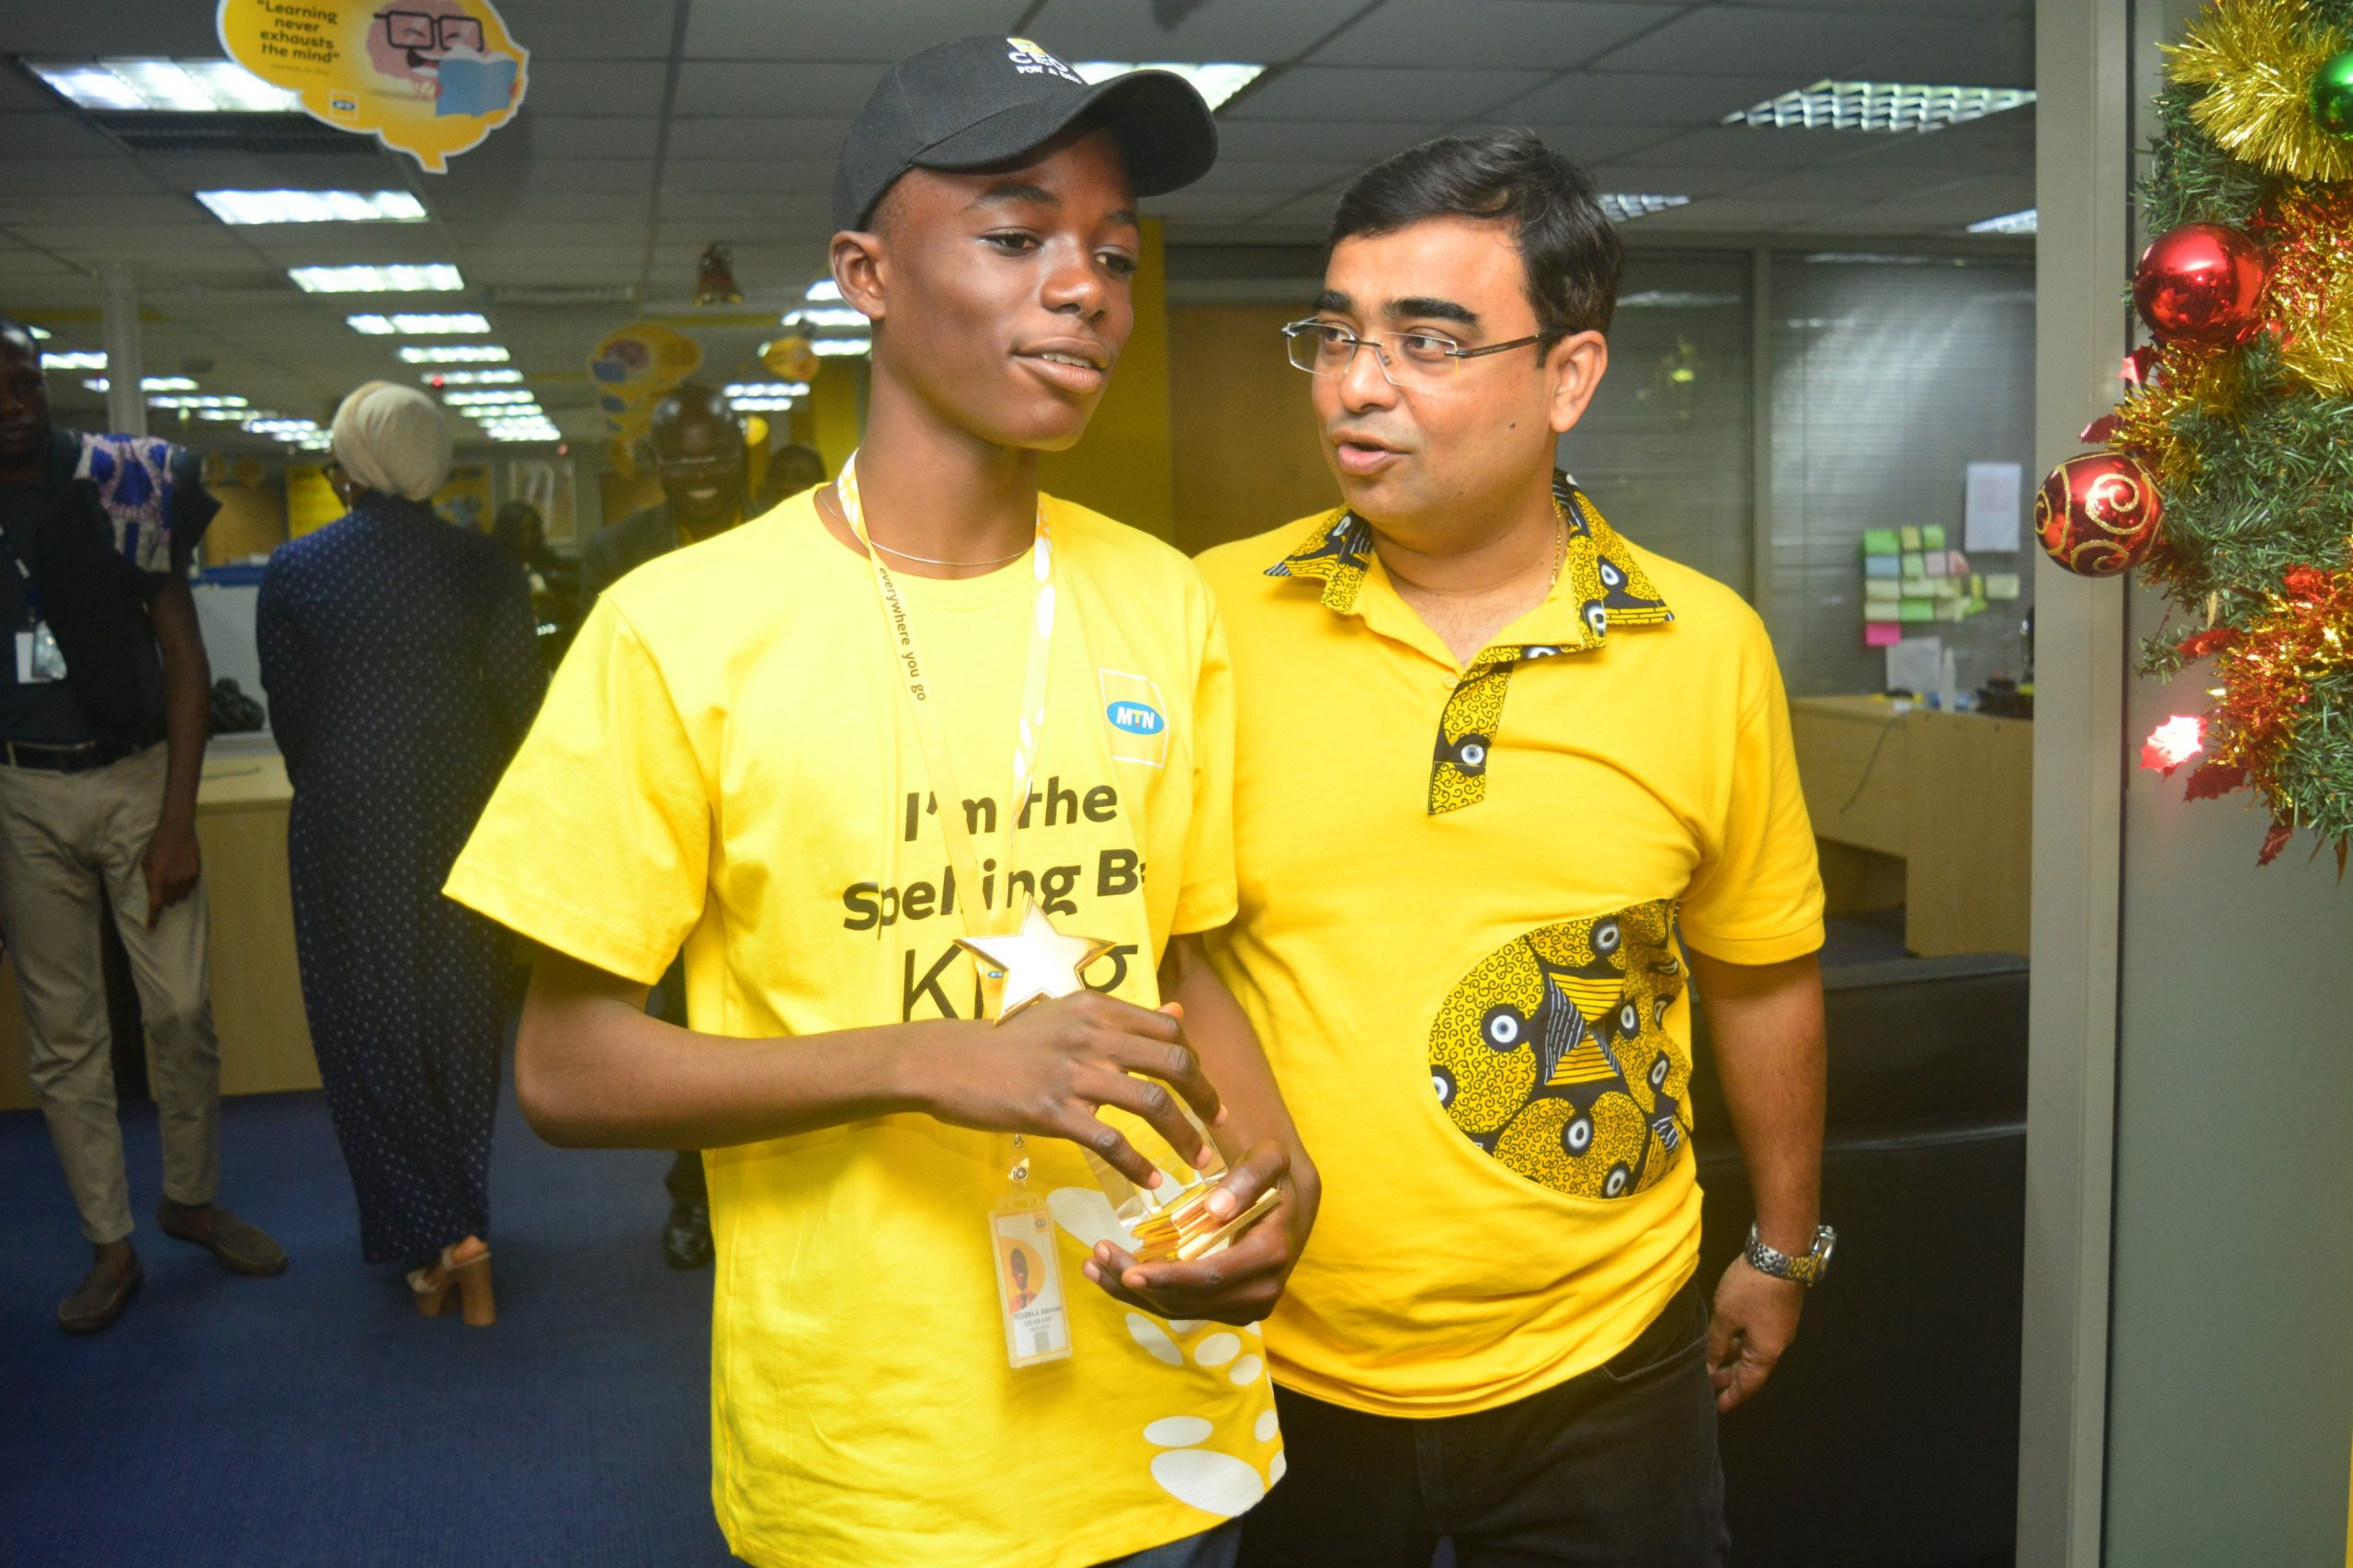 MTN Nigeria Announces One-Day Kid CEO, as Lagos experiences 5G demonstration